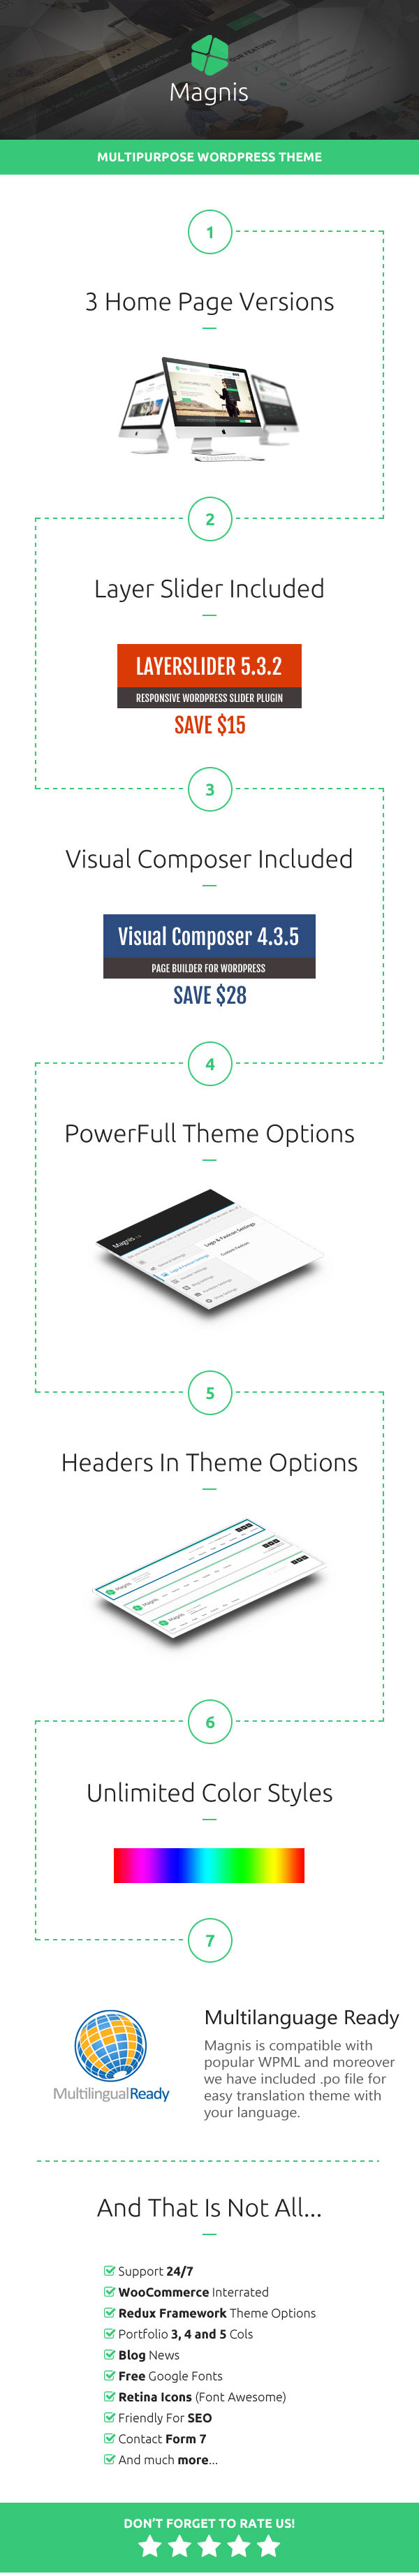 Description Magnis - Corporate Multipurpose WordPress Theme